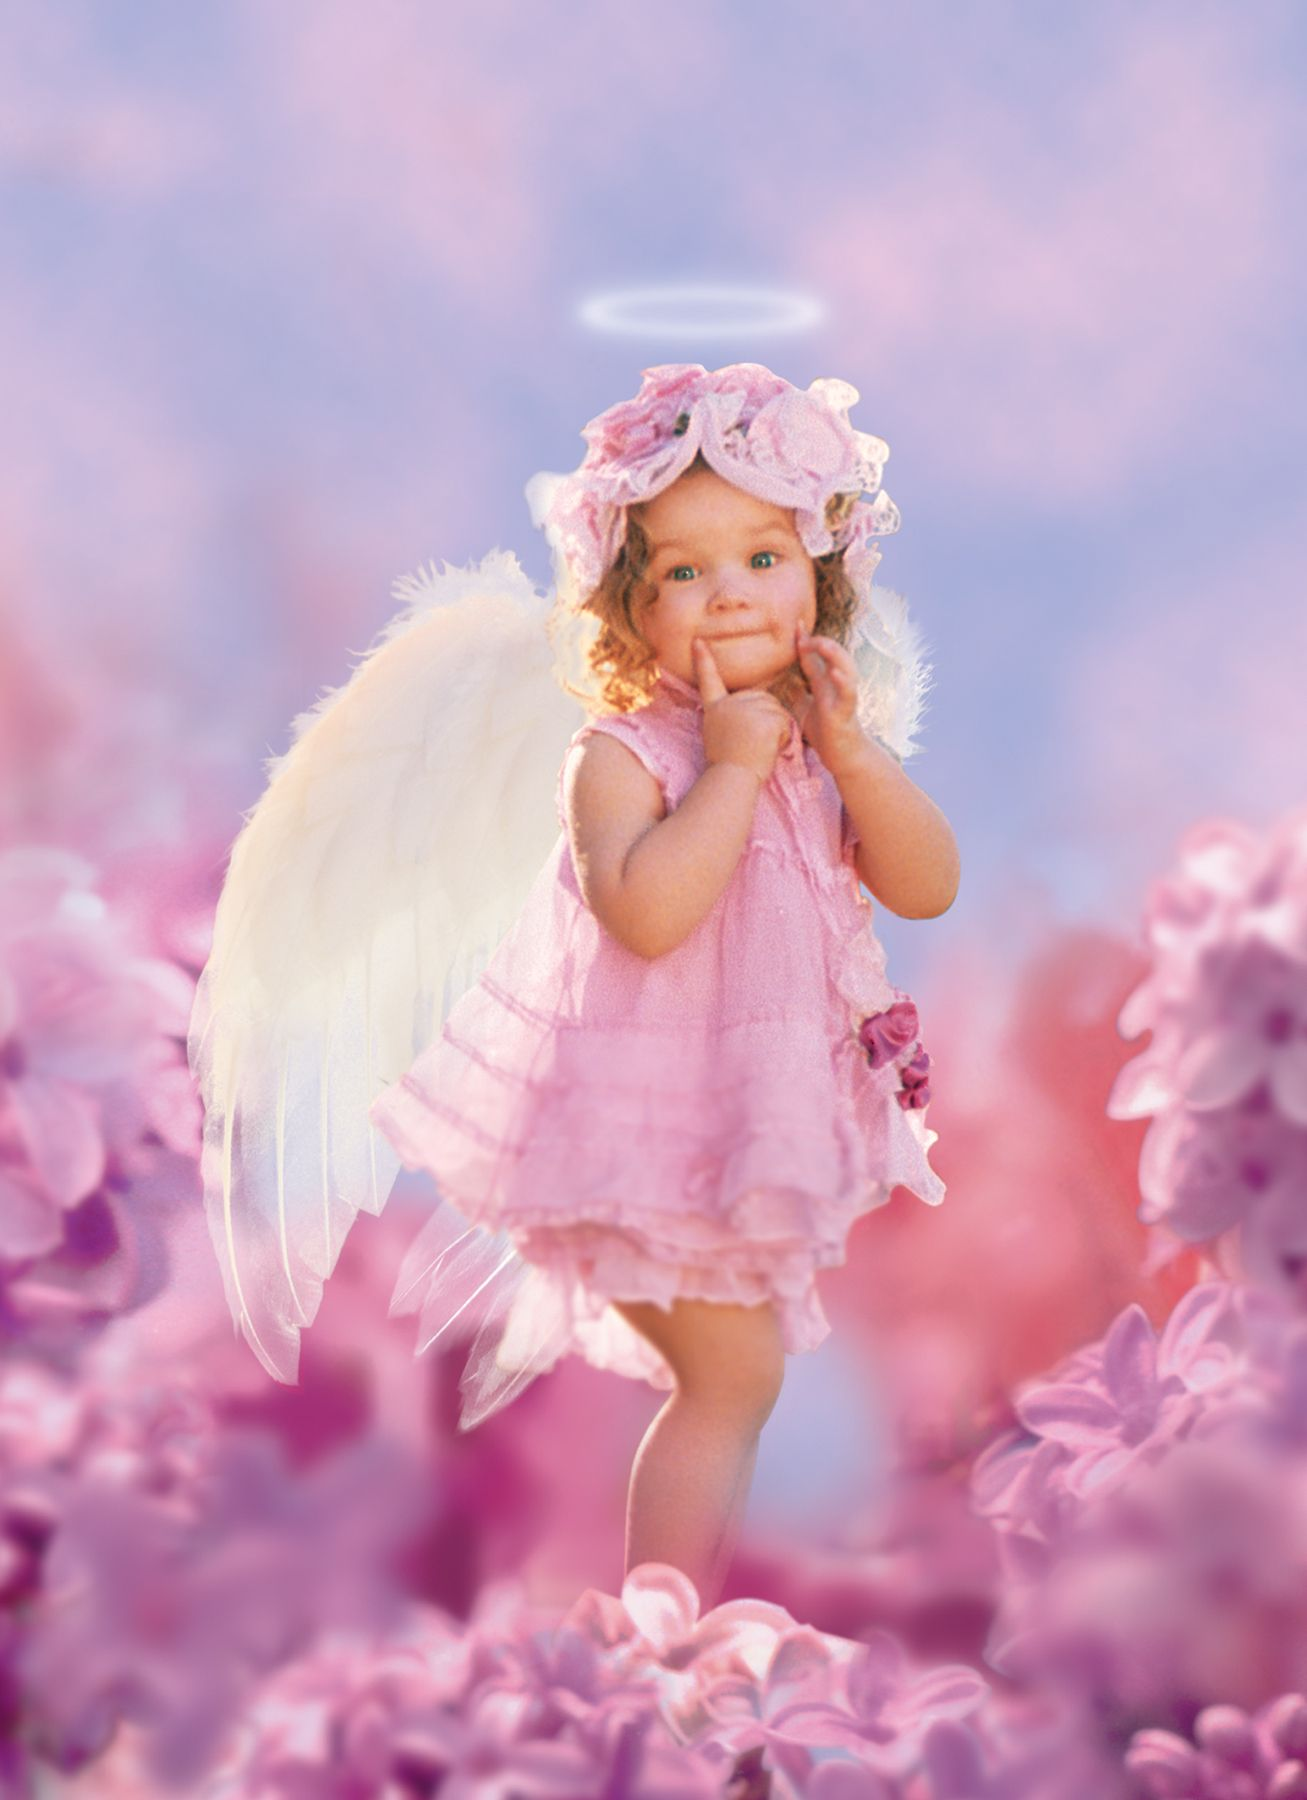 Pin by Deanne vH on engeltjes  Pinterest  Angel Fairy and